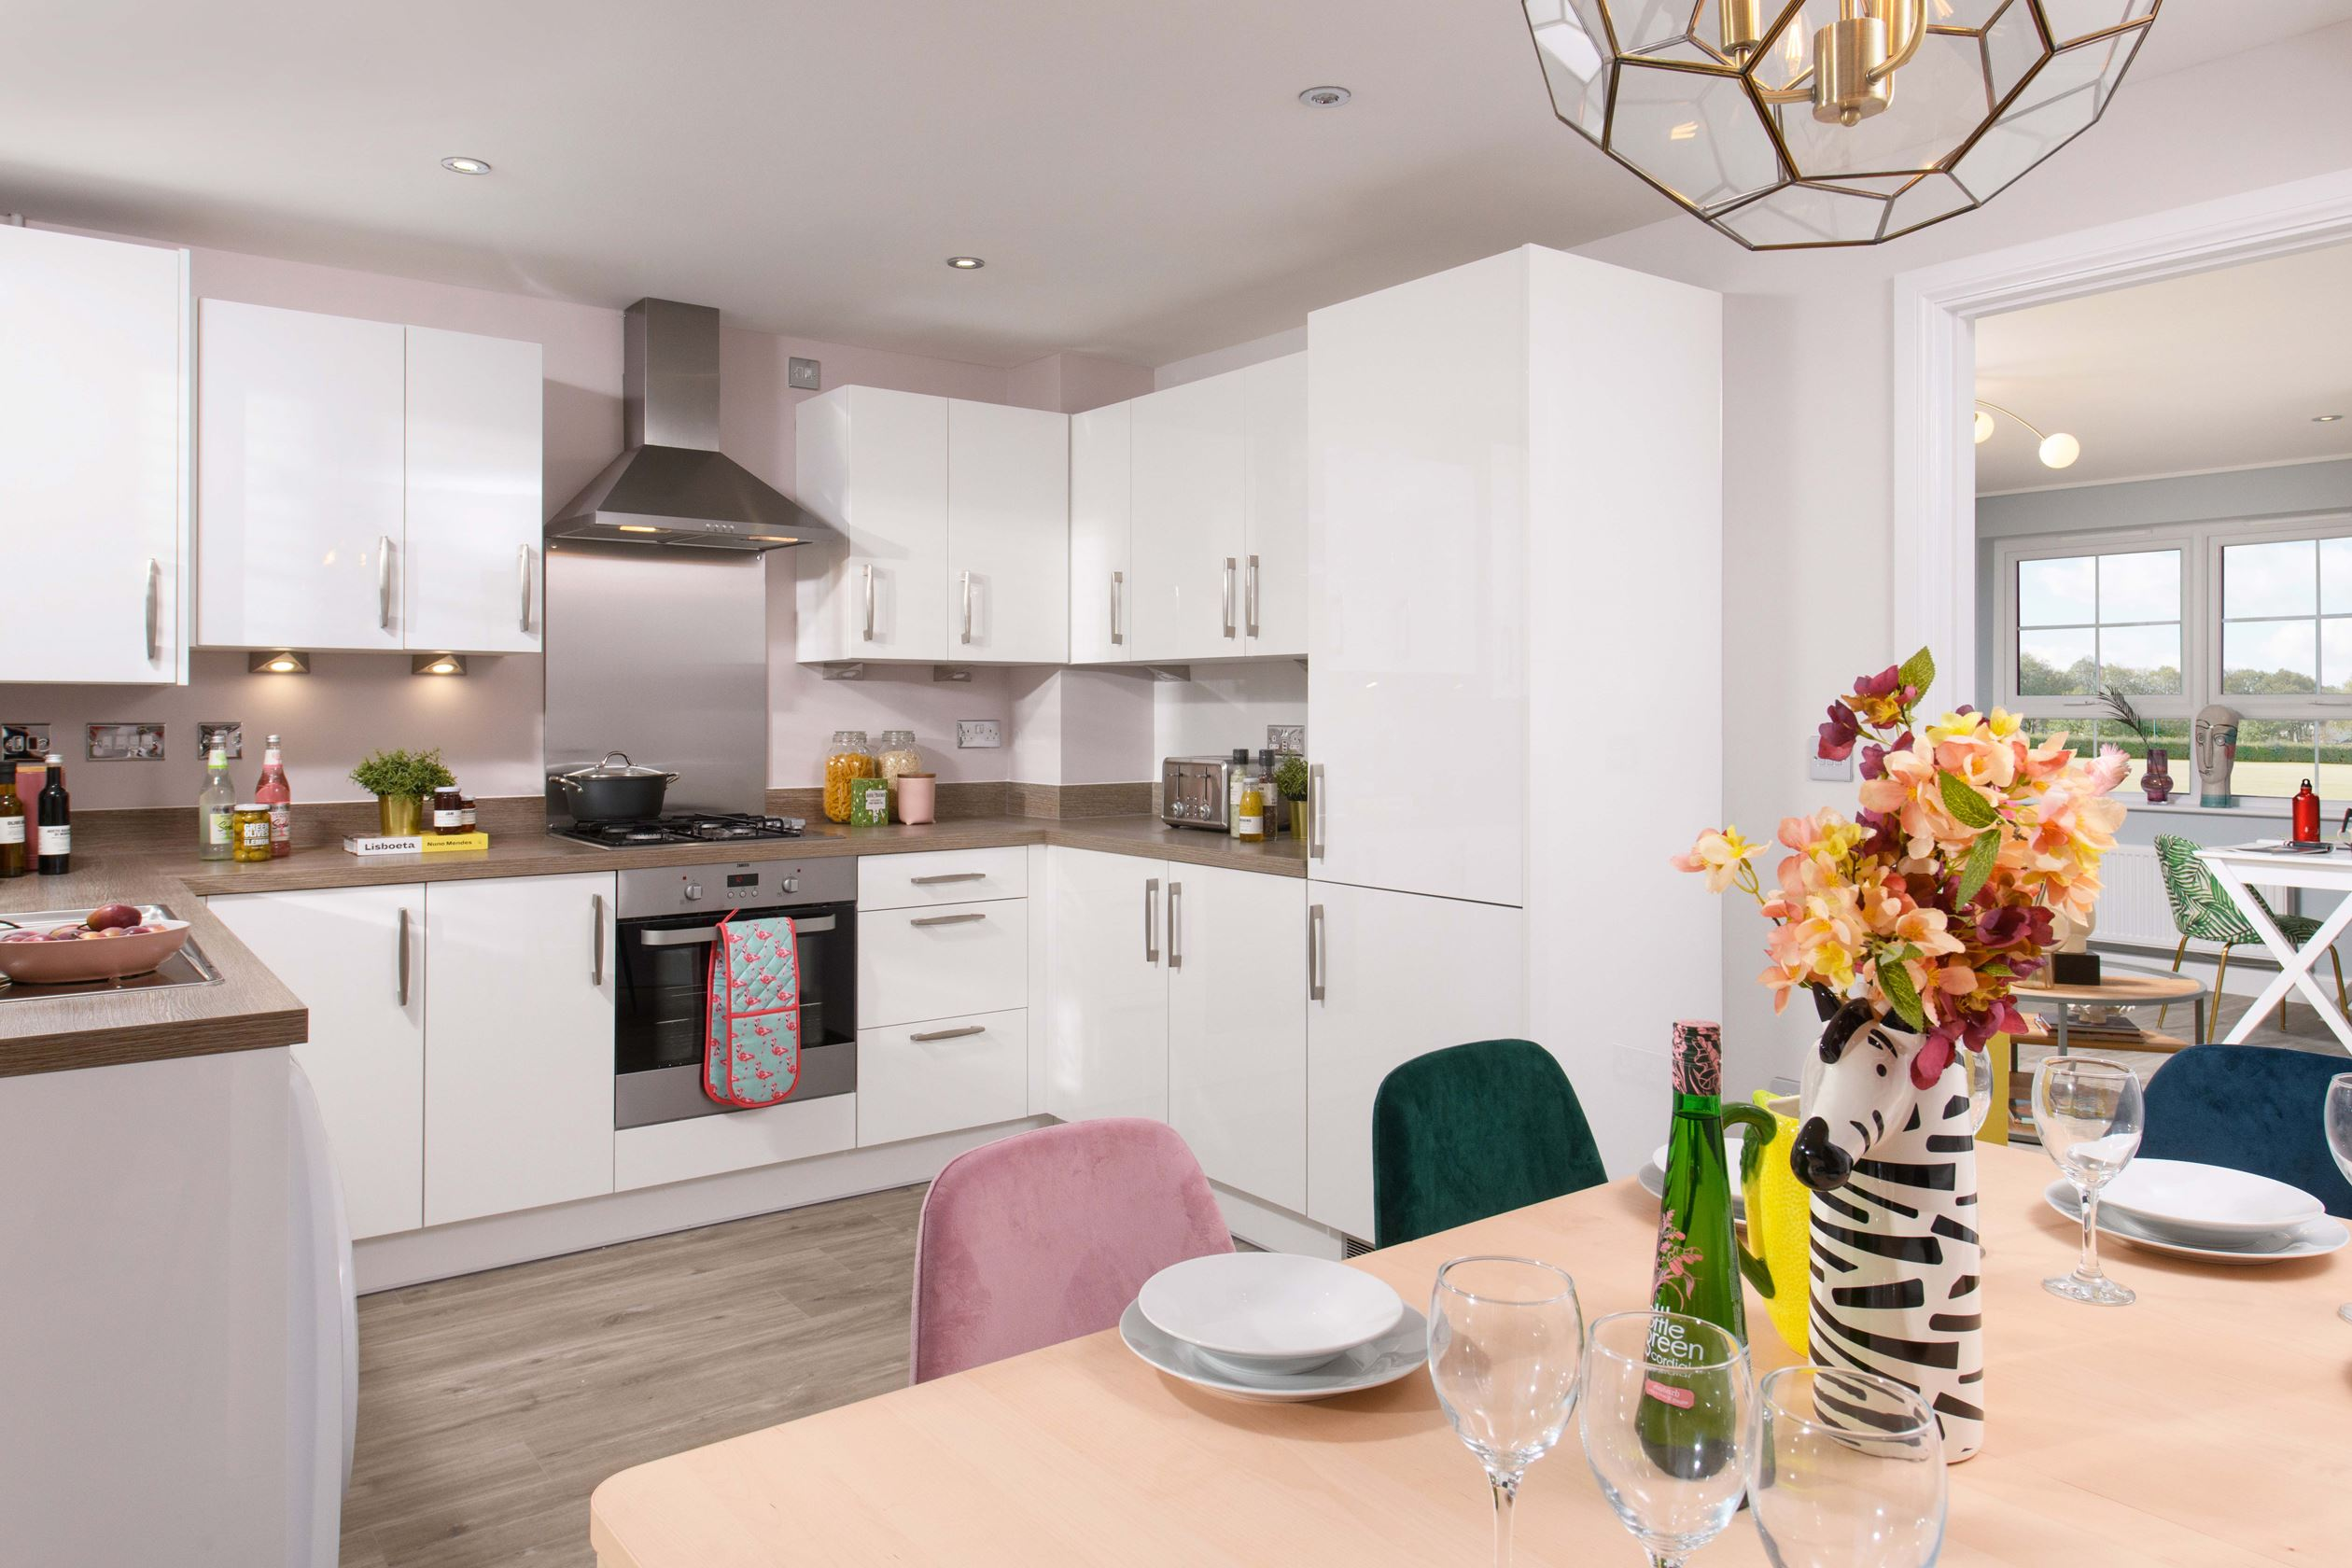 Kitchen diner in the Maidstone 3 bedroom Show Home